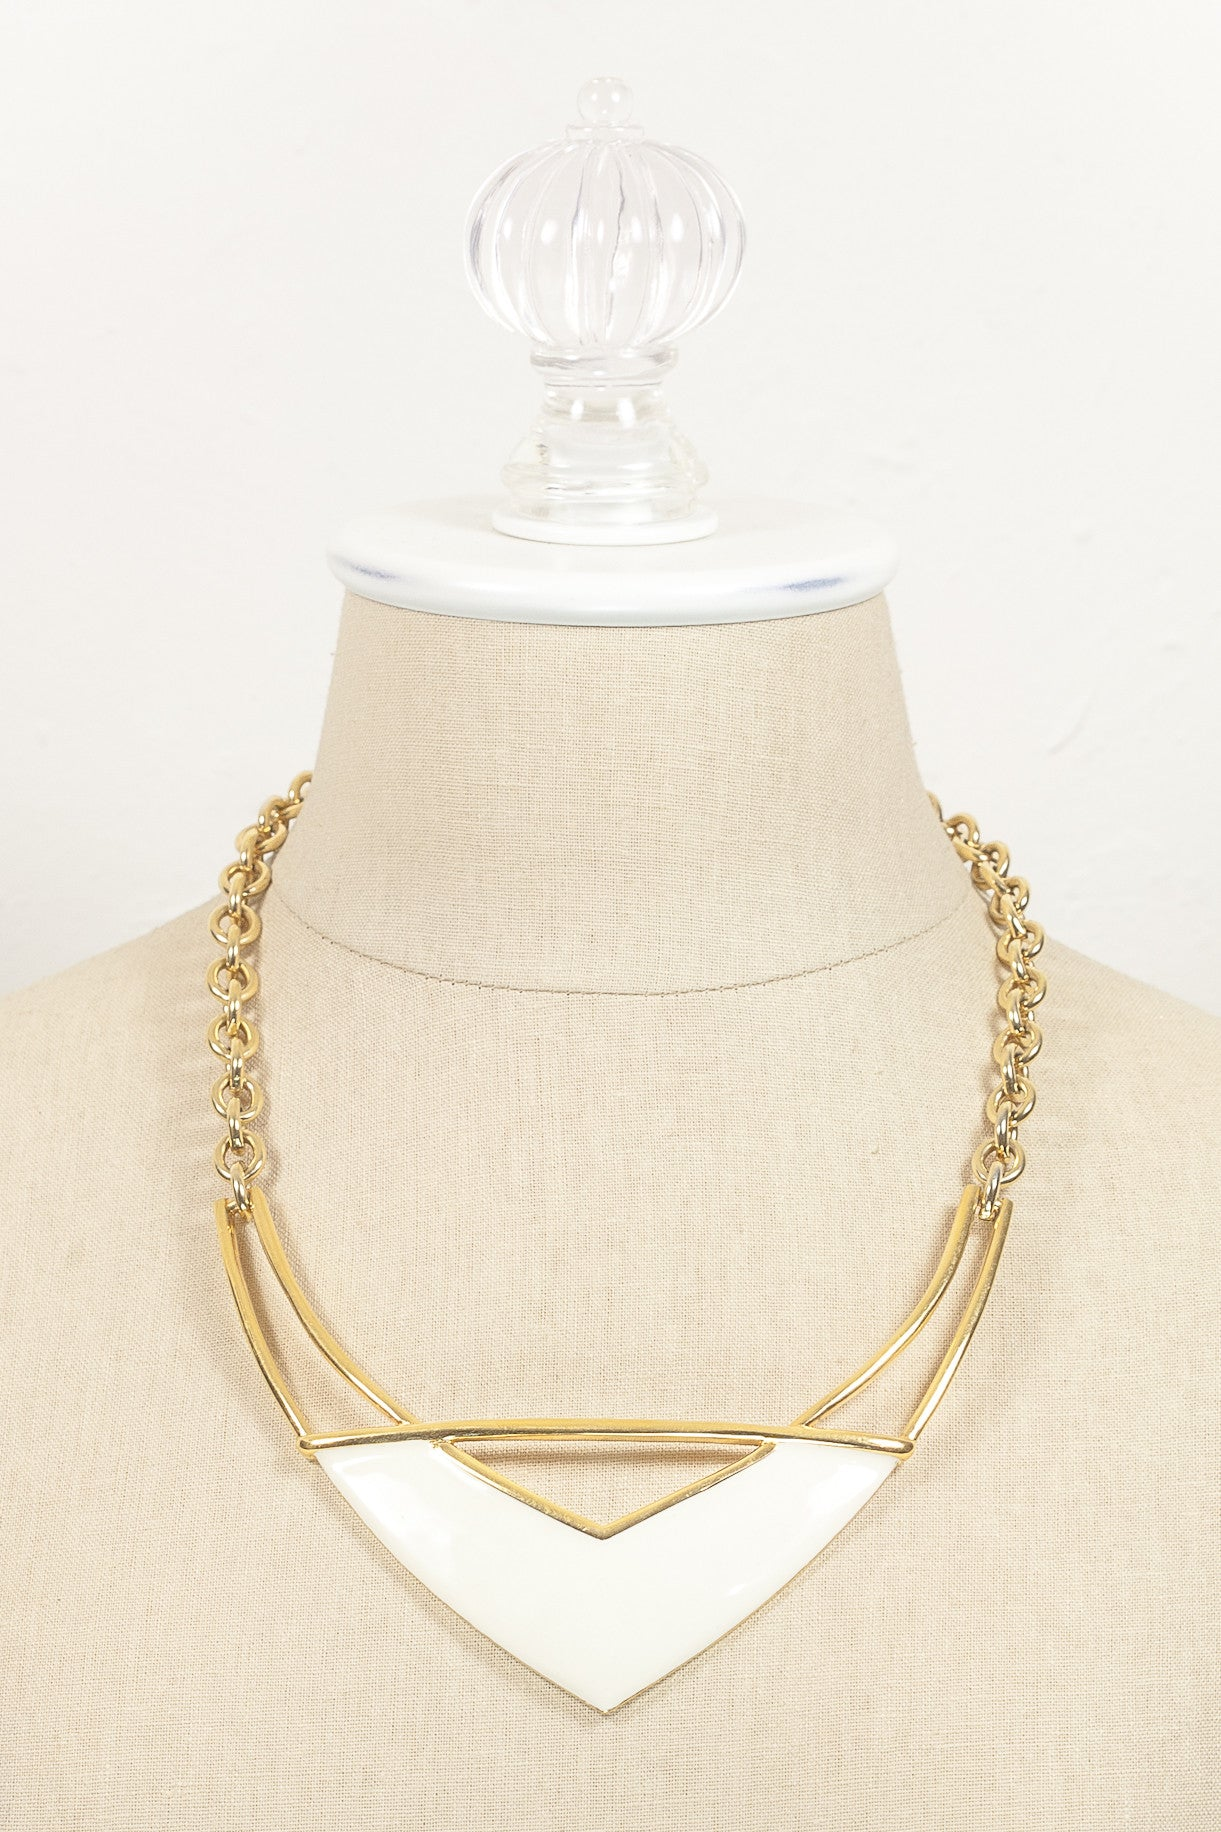 70's__Monet__Bold V Bar Necklace